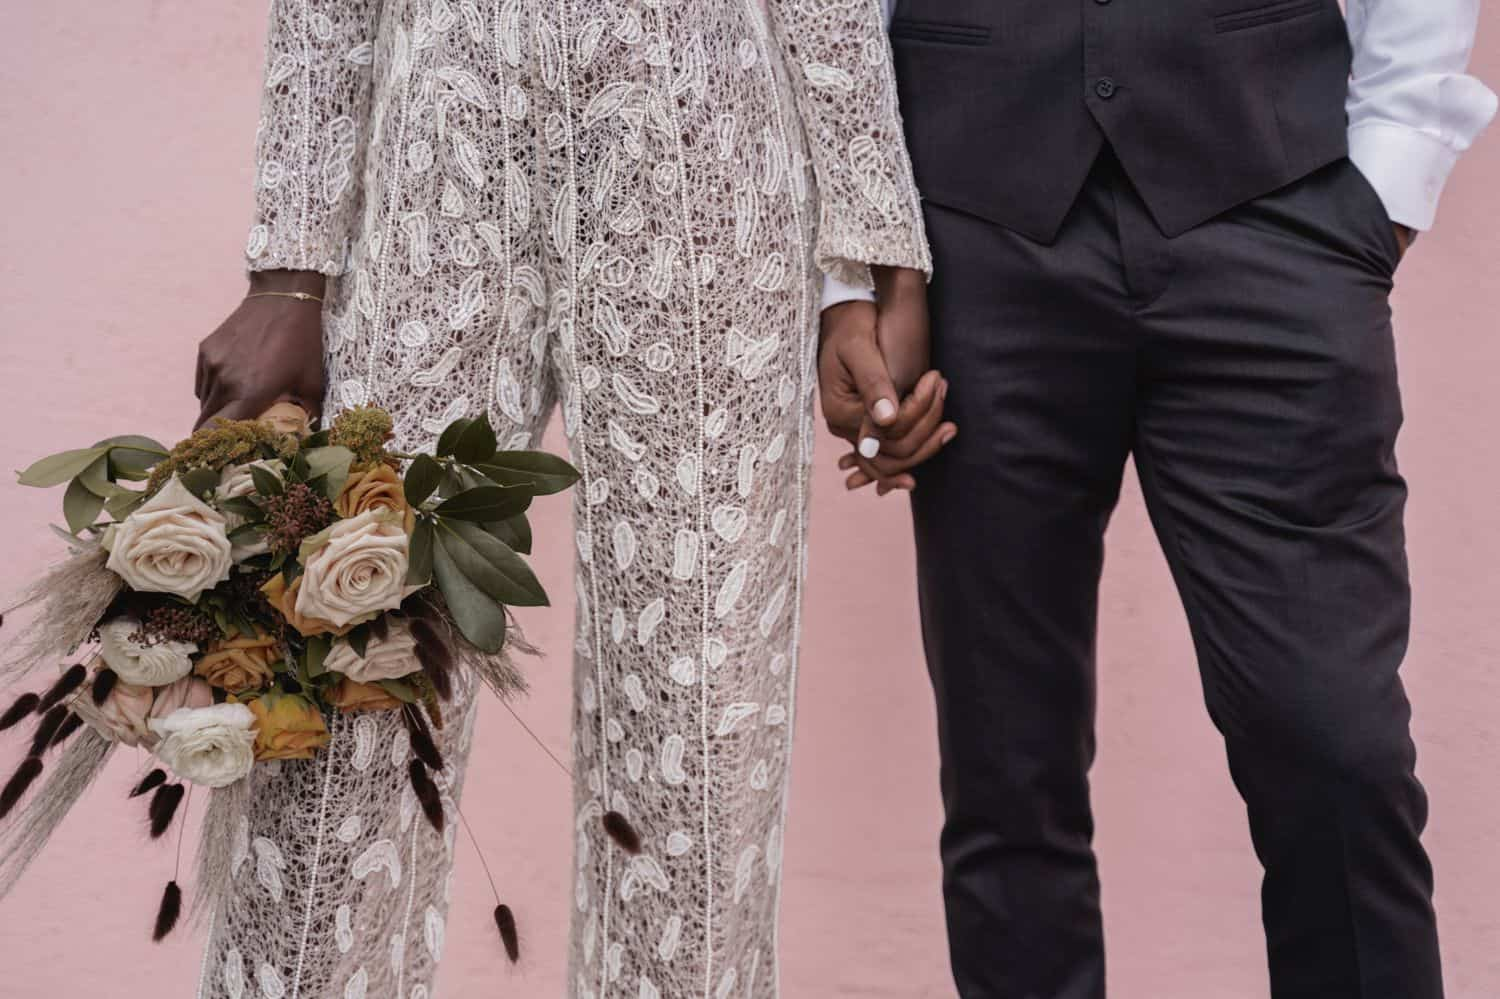 A bride in a lace jumpsuit is posed beside a groom in a gray suit. They are pictured from the waist-down in front of a pink wall.